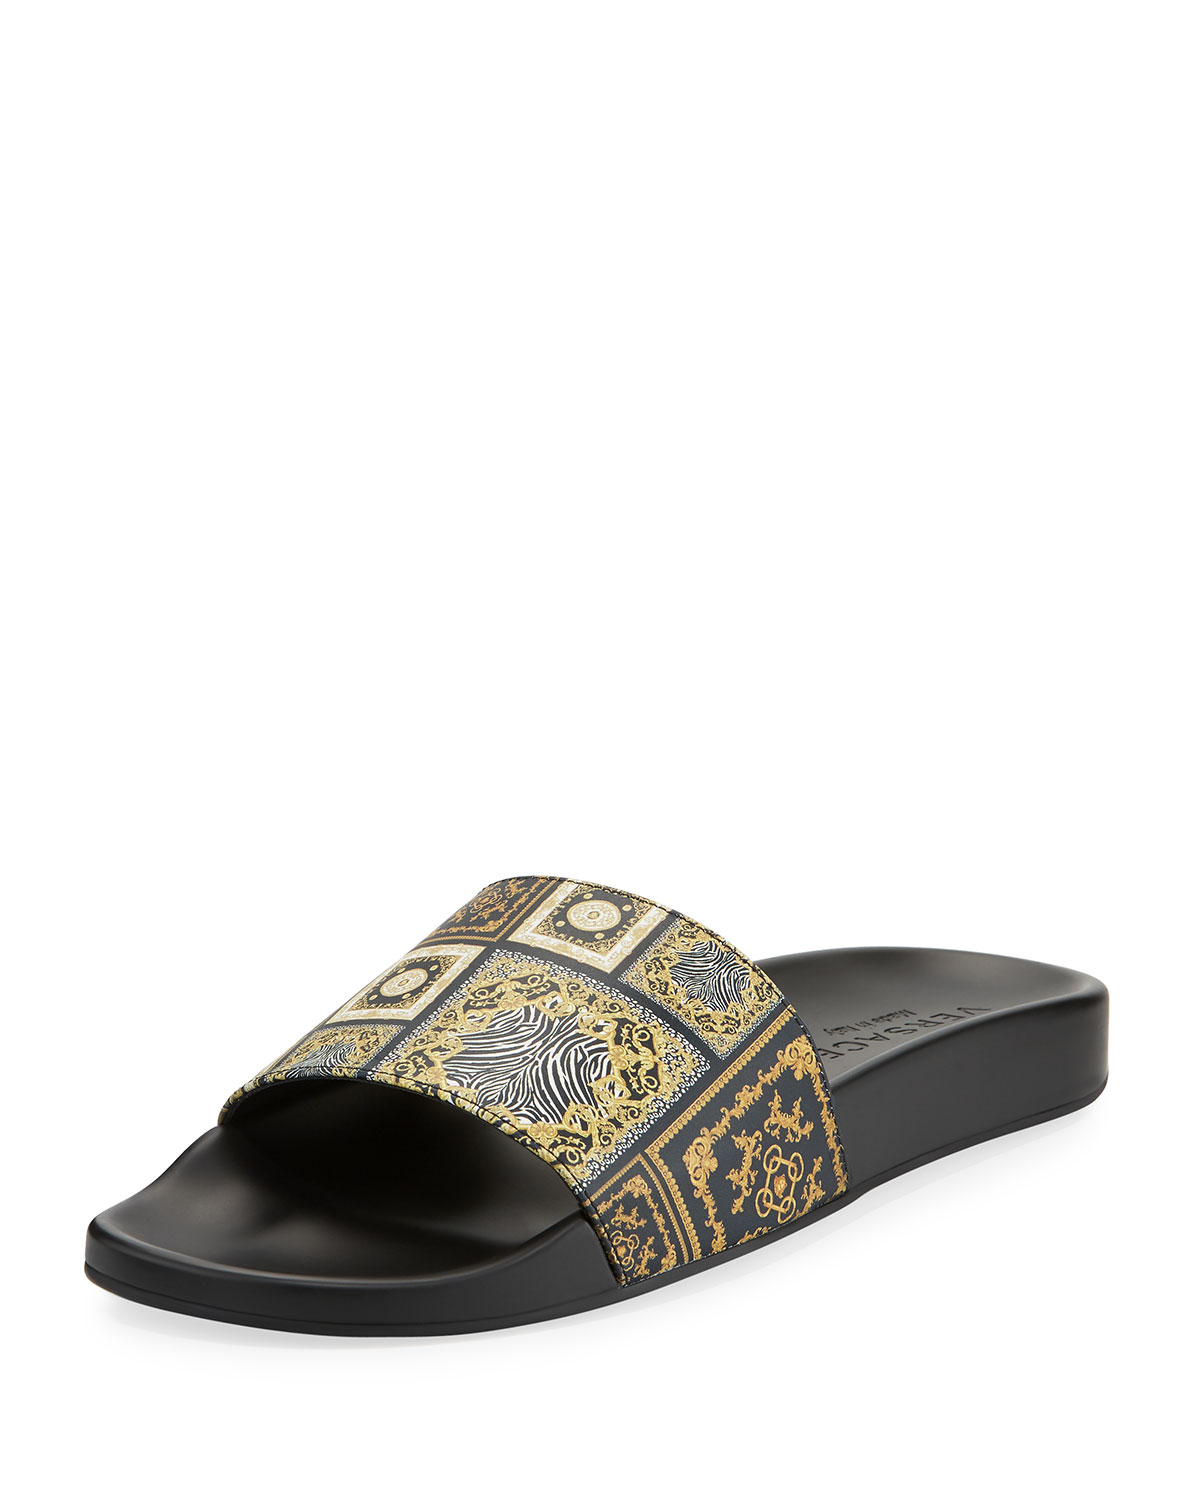 1667adb8f6531d Versace Men s Baroque Tile Signature Slide Sandal